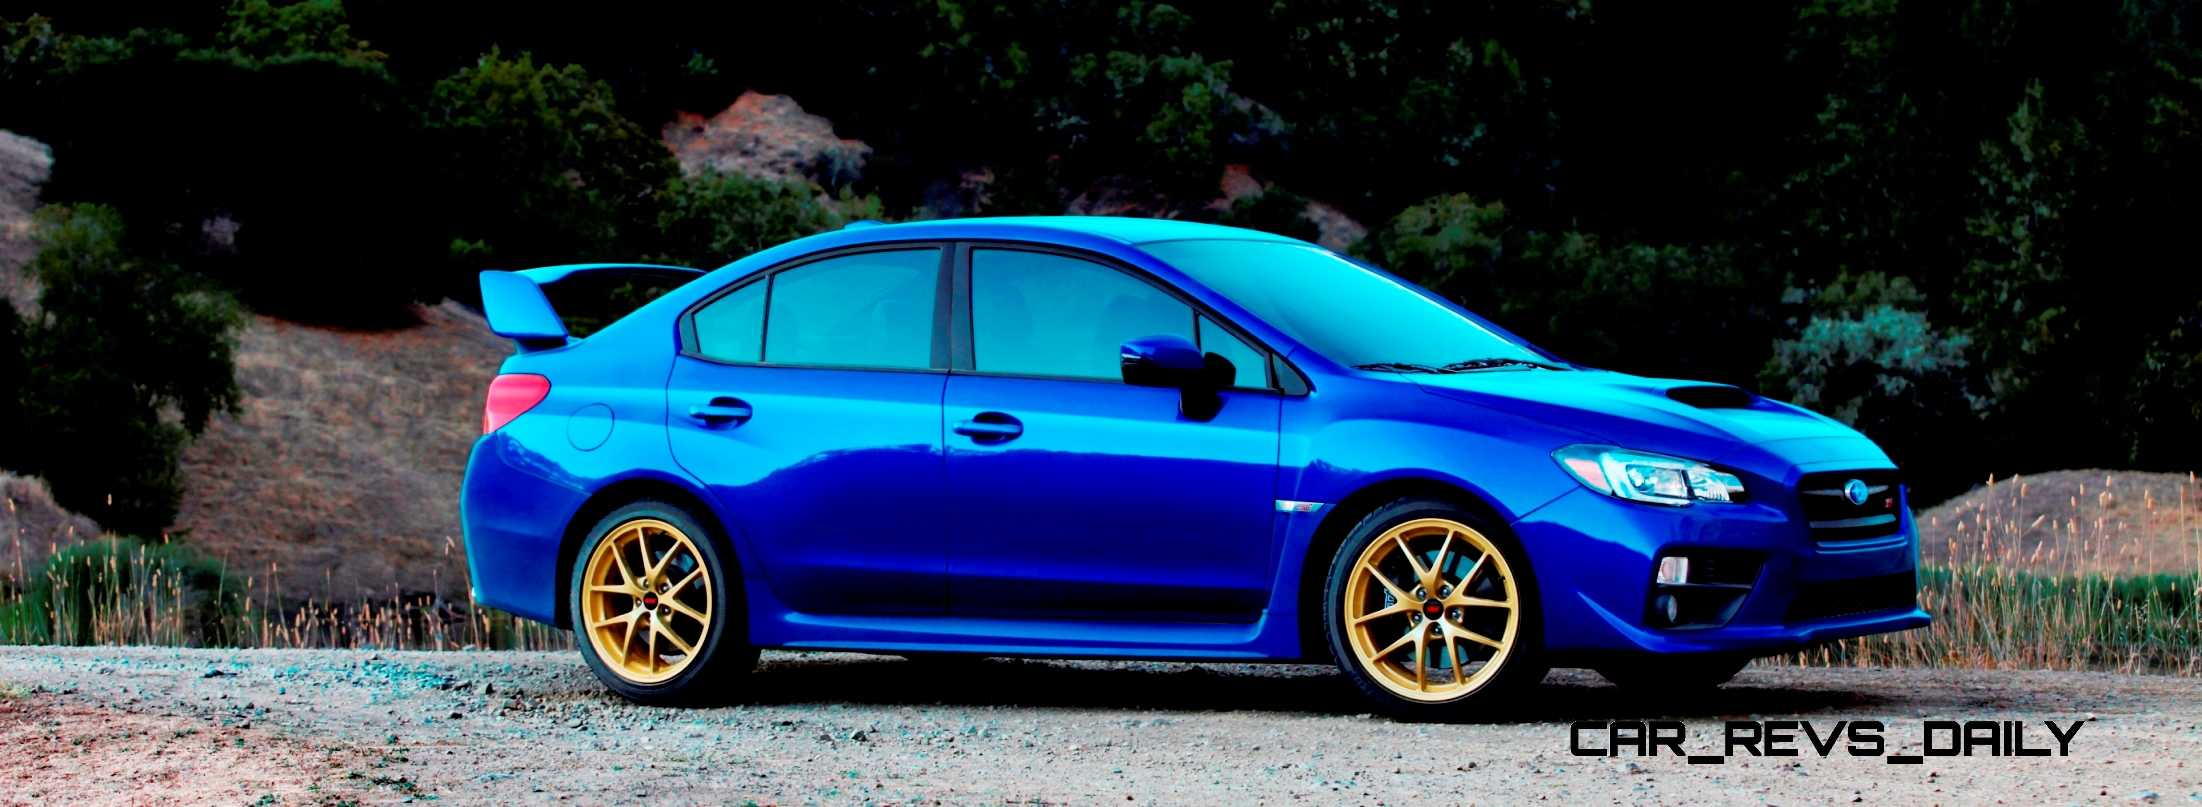 Mid City Subaru >> Spec Rendering - 2016 Subaru WRX STi RS500 Coupe